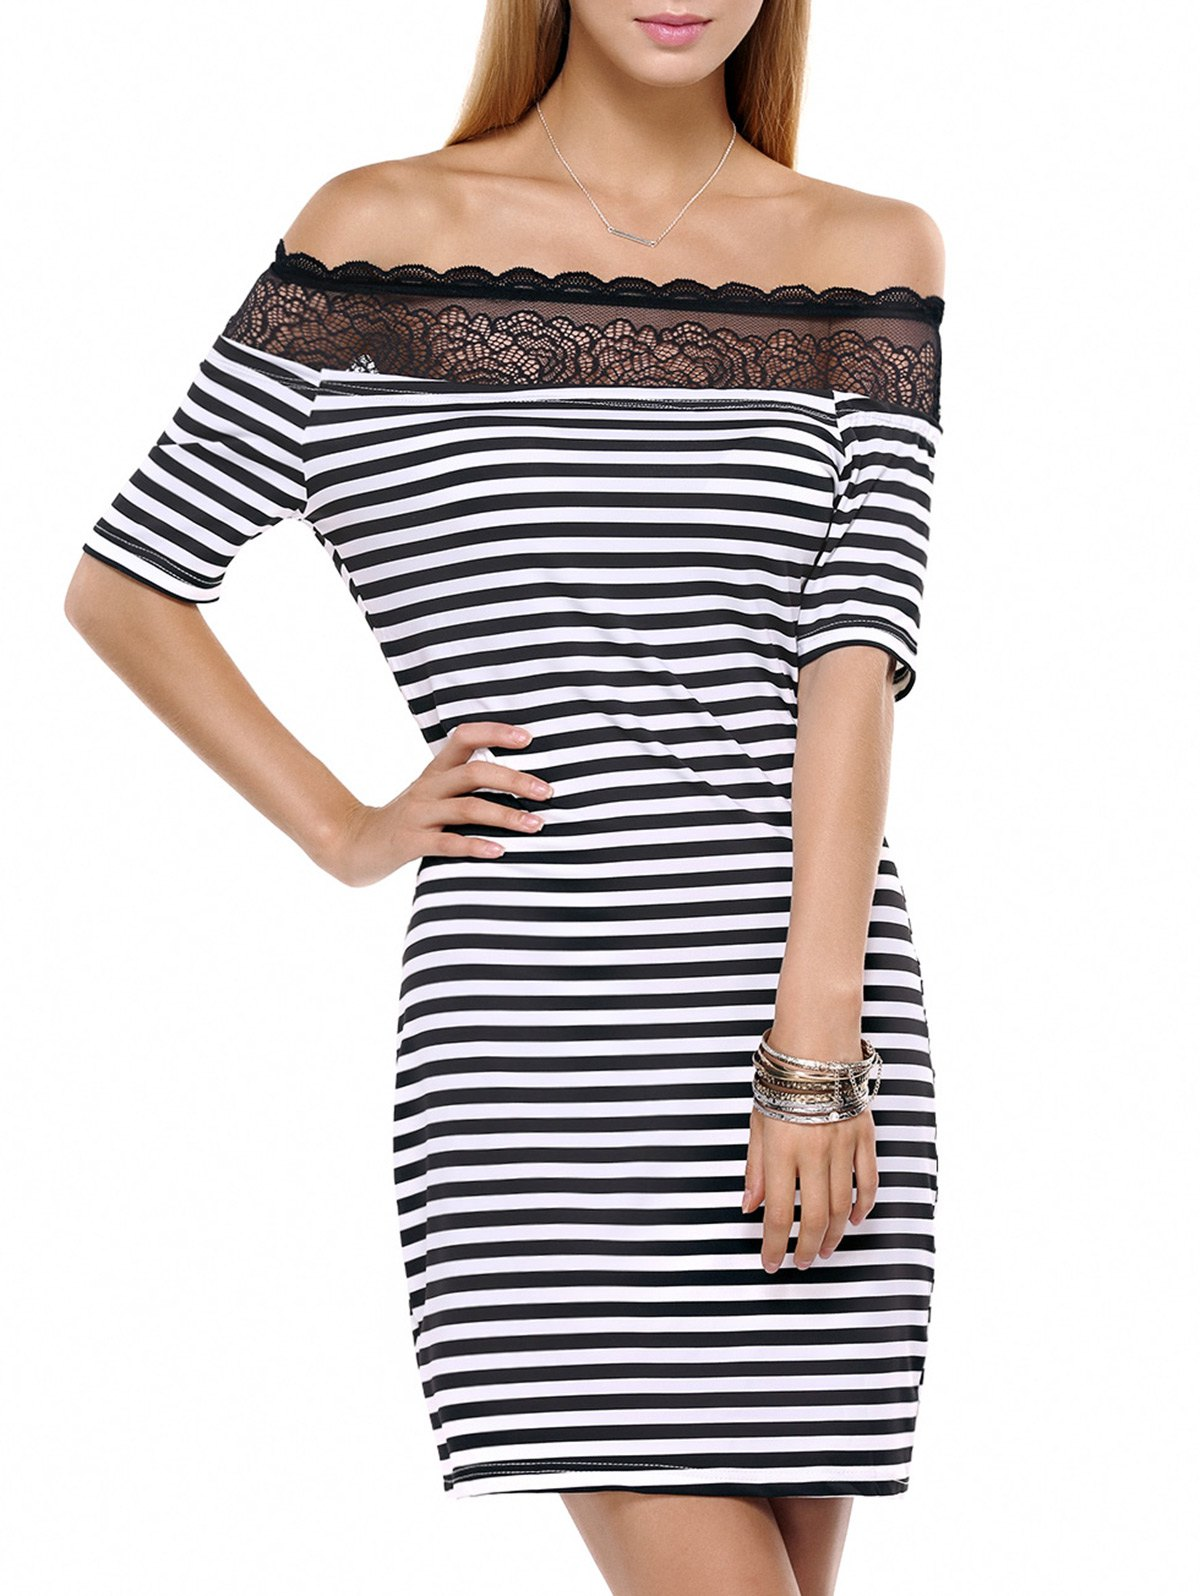 Striped Lace Splicing Off The Shoulder Dress - WHITE/BLACK L